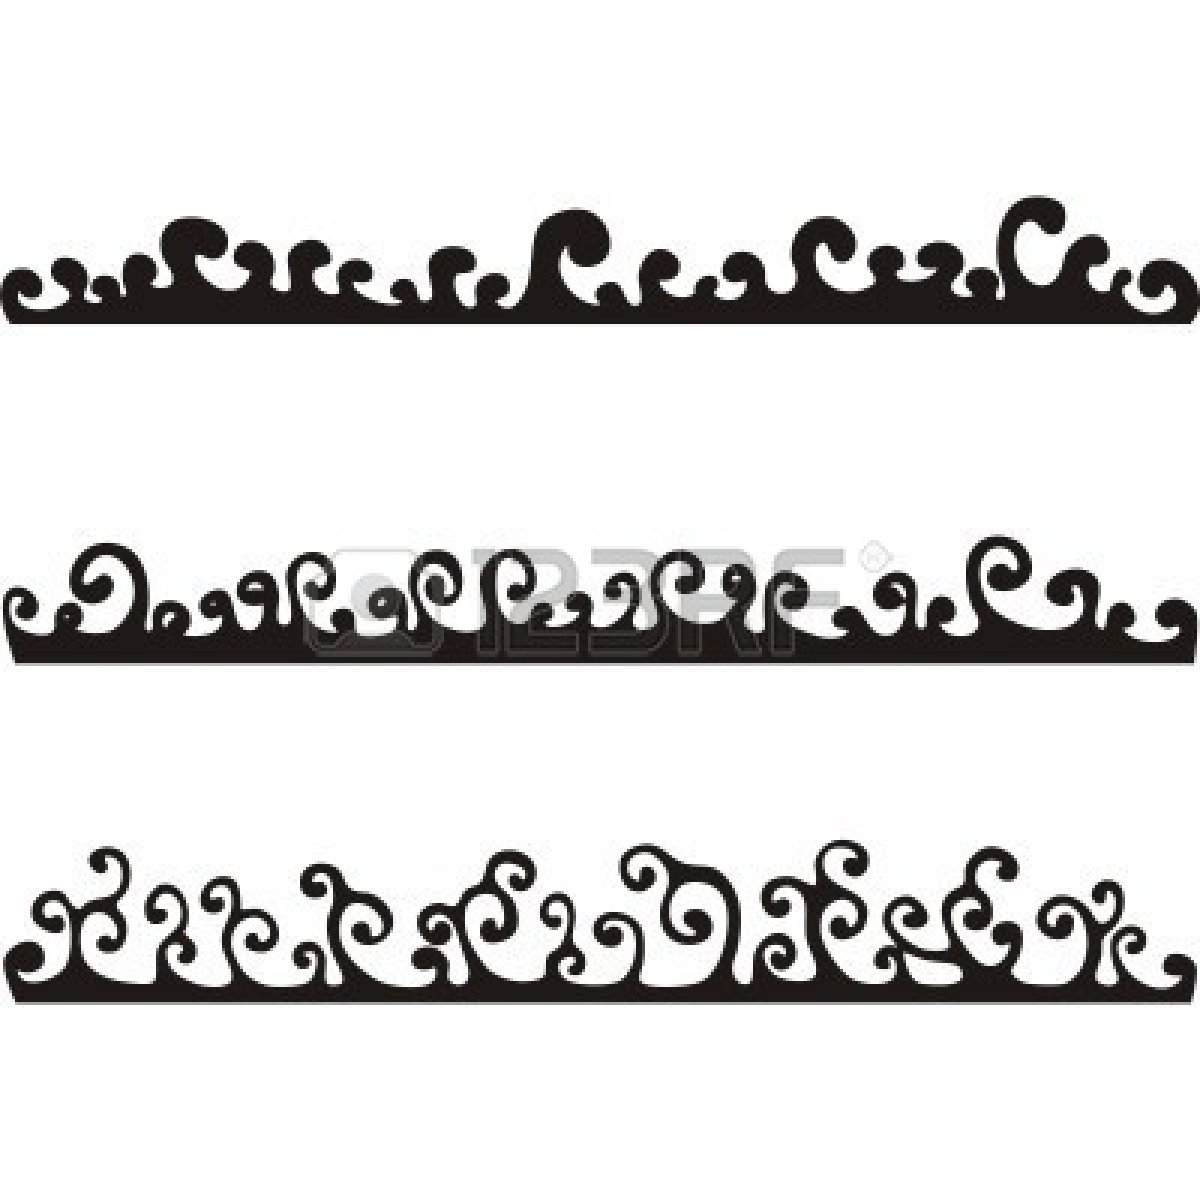 Ocean Clip Art Black And White Cliparts